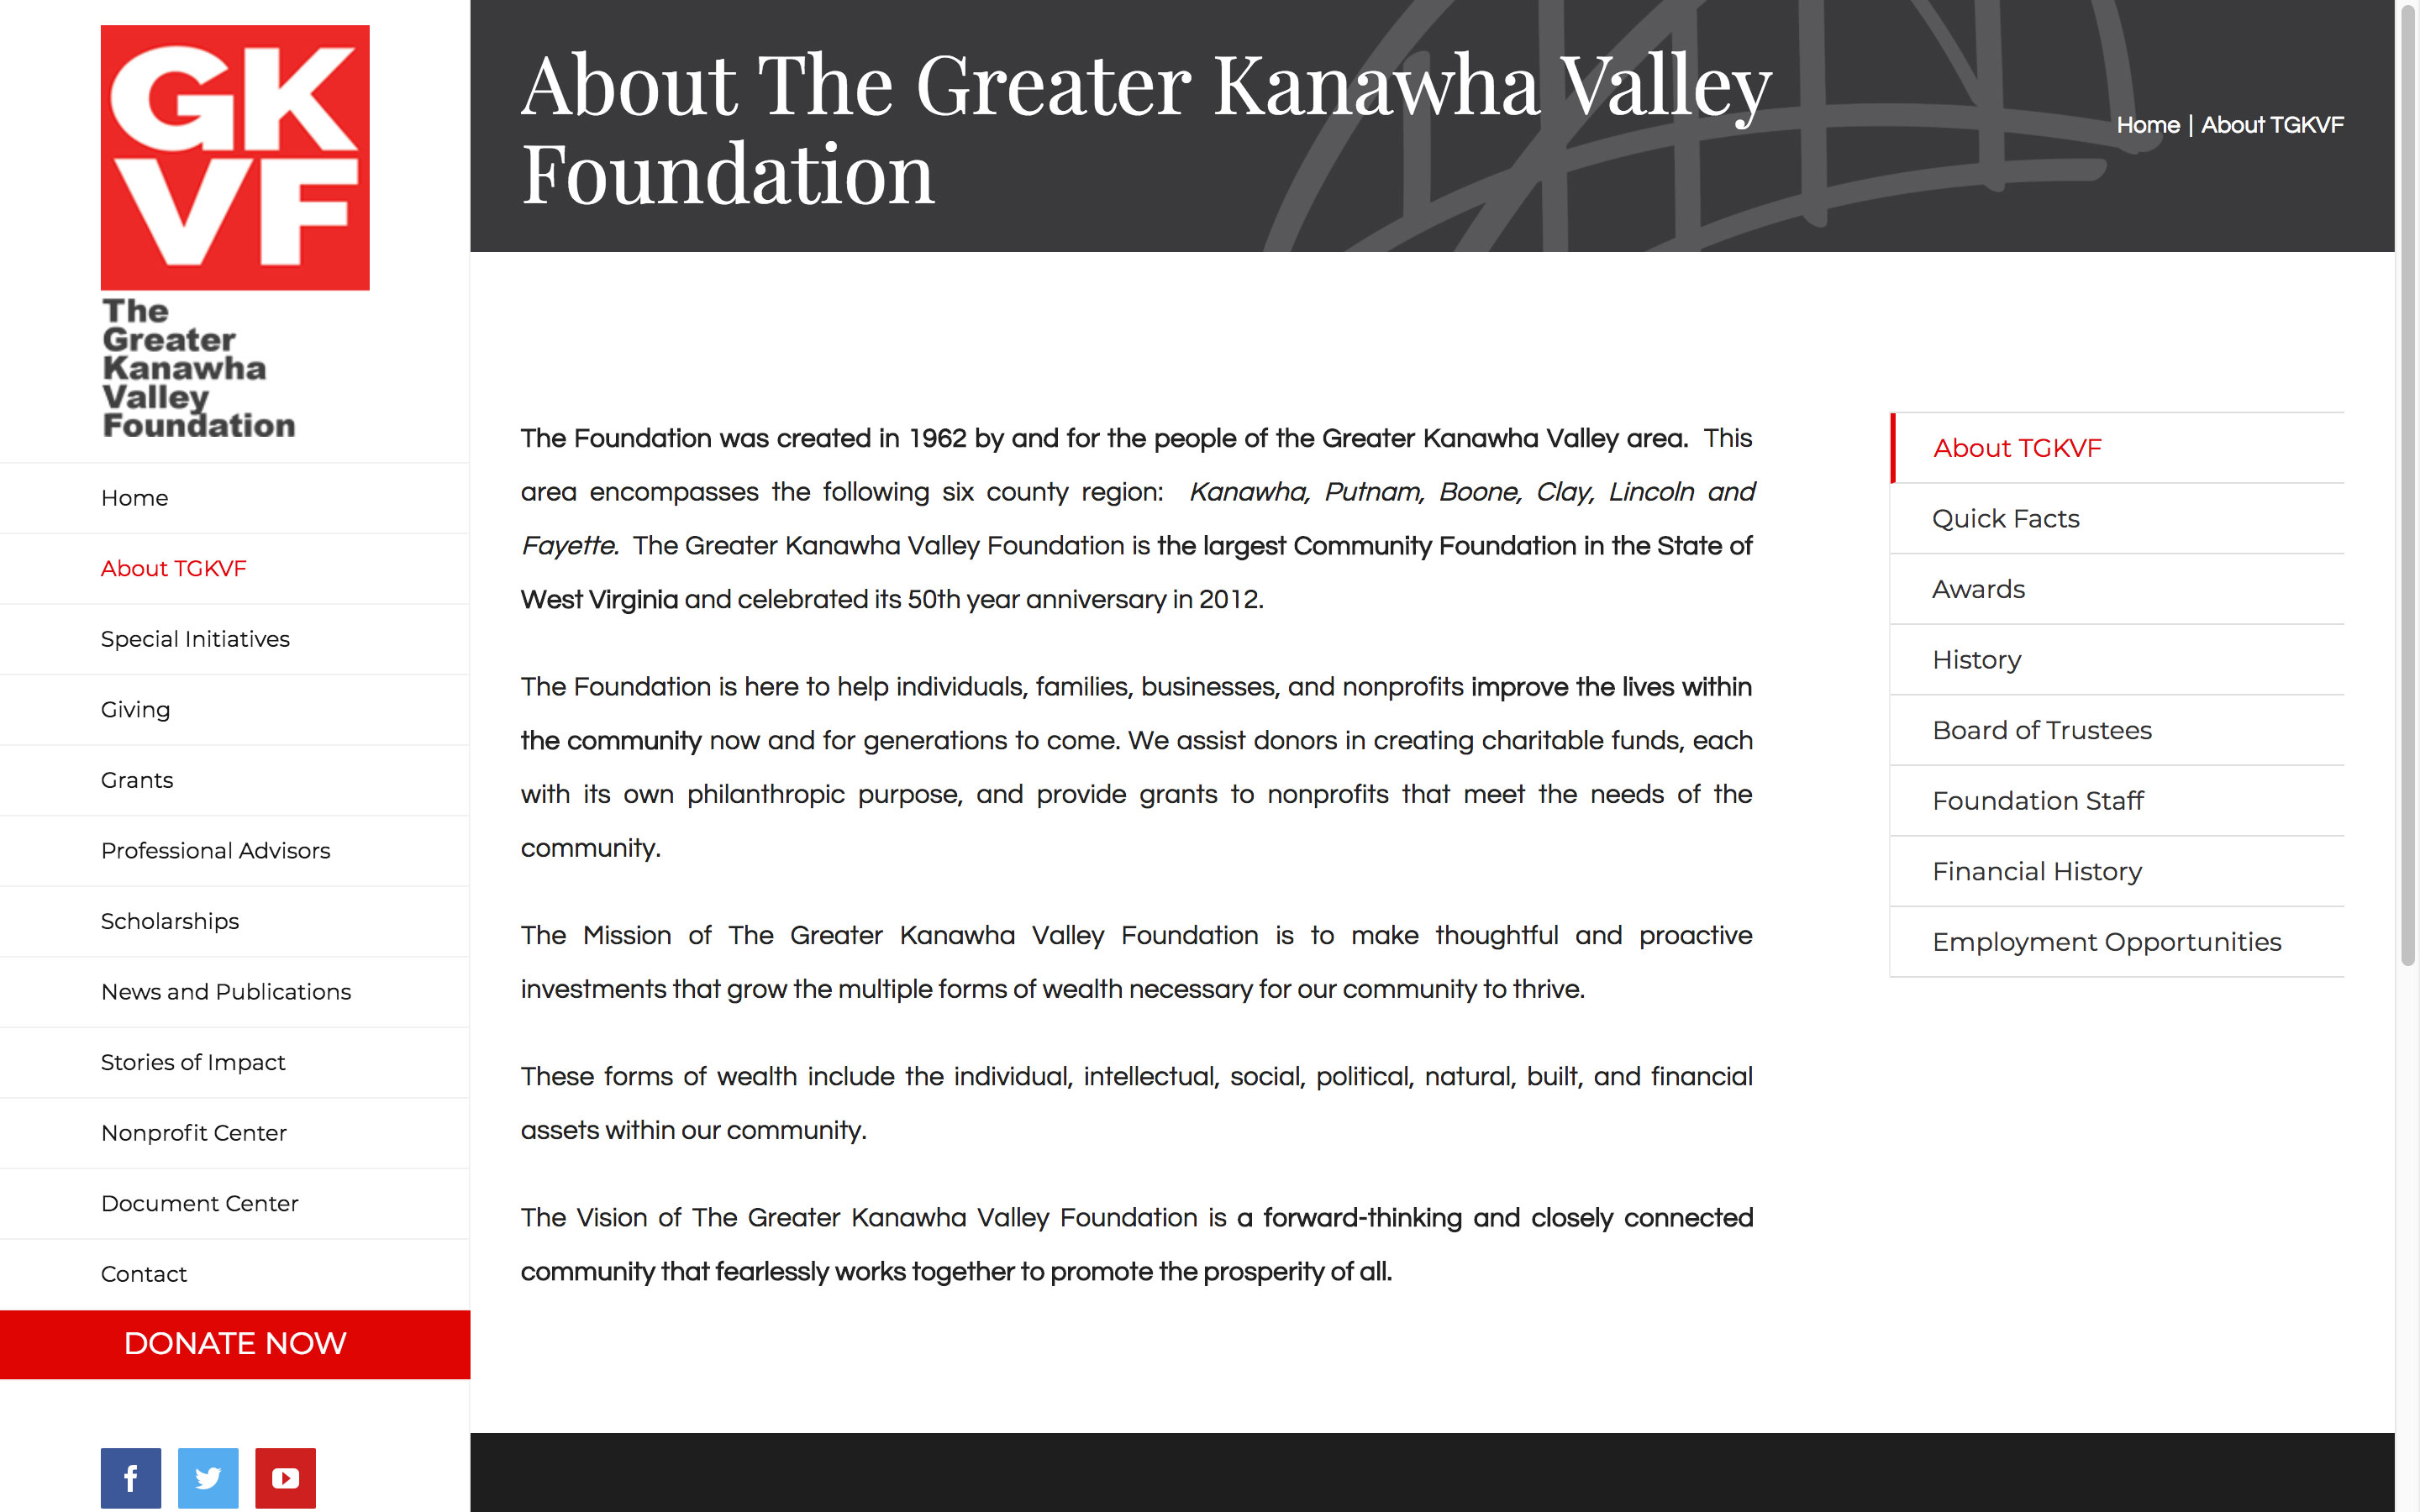 The Greater Kanawha Valley Foundation About Us Page Best Websites in WV Charleston Huntington Beckley Princeton Web Design